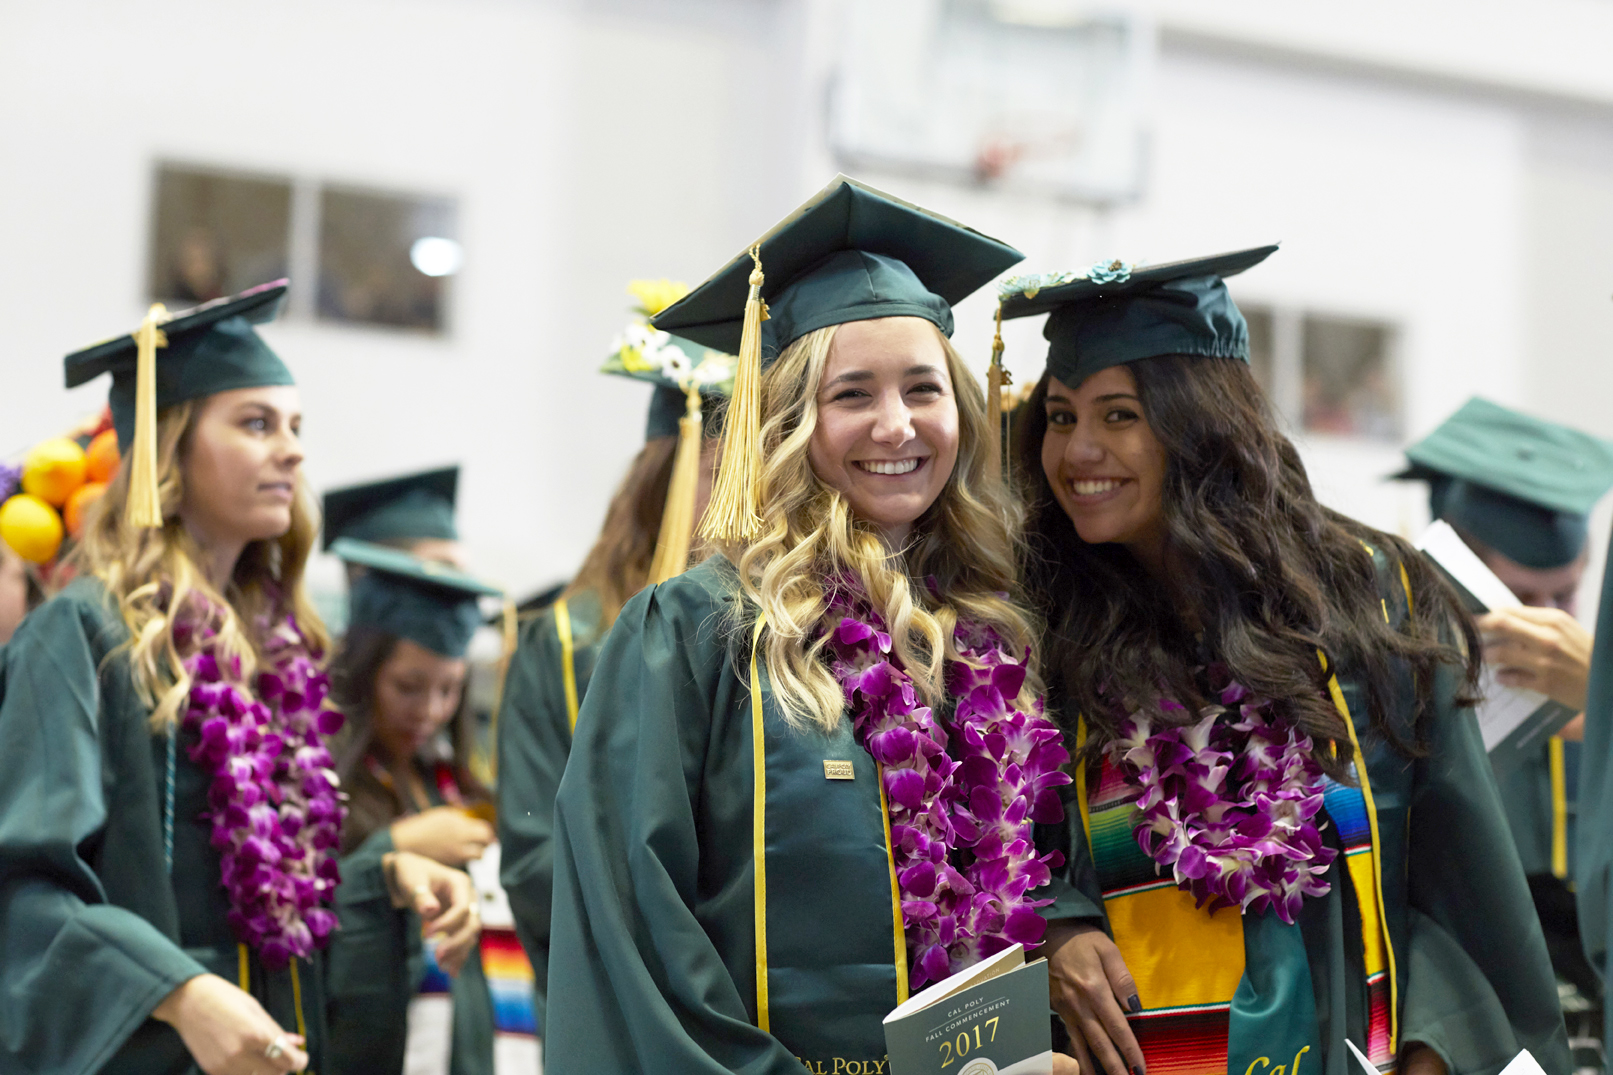 Photo of two students at a past commencement ceremony.